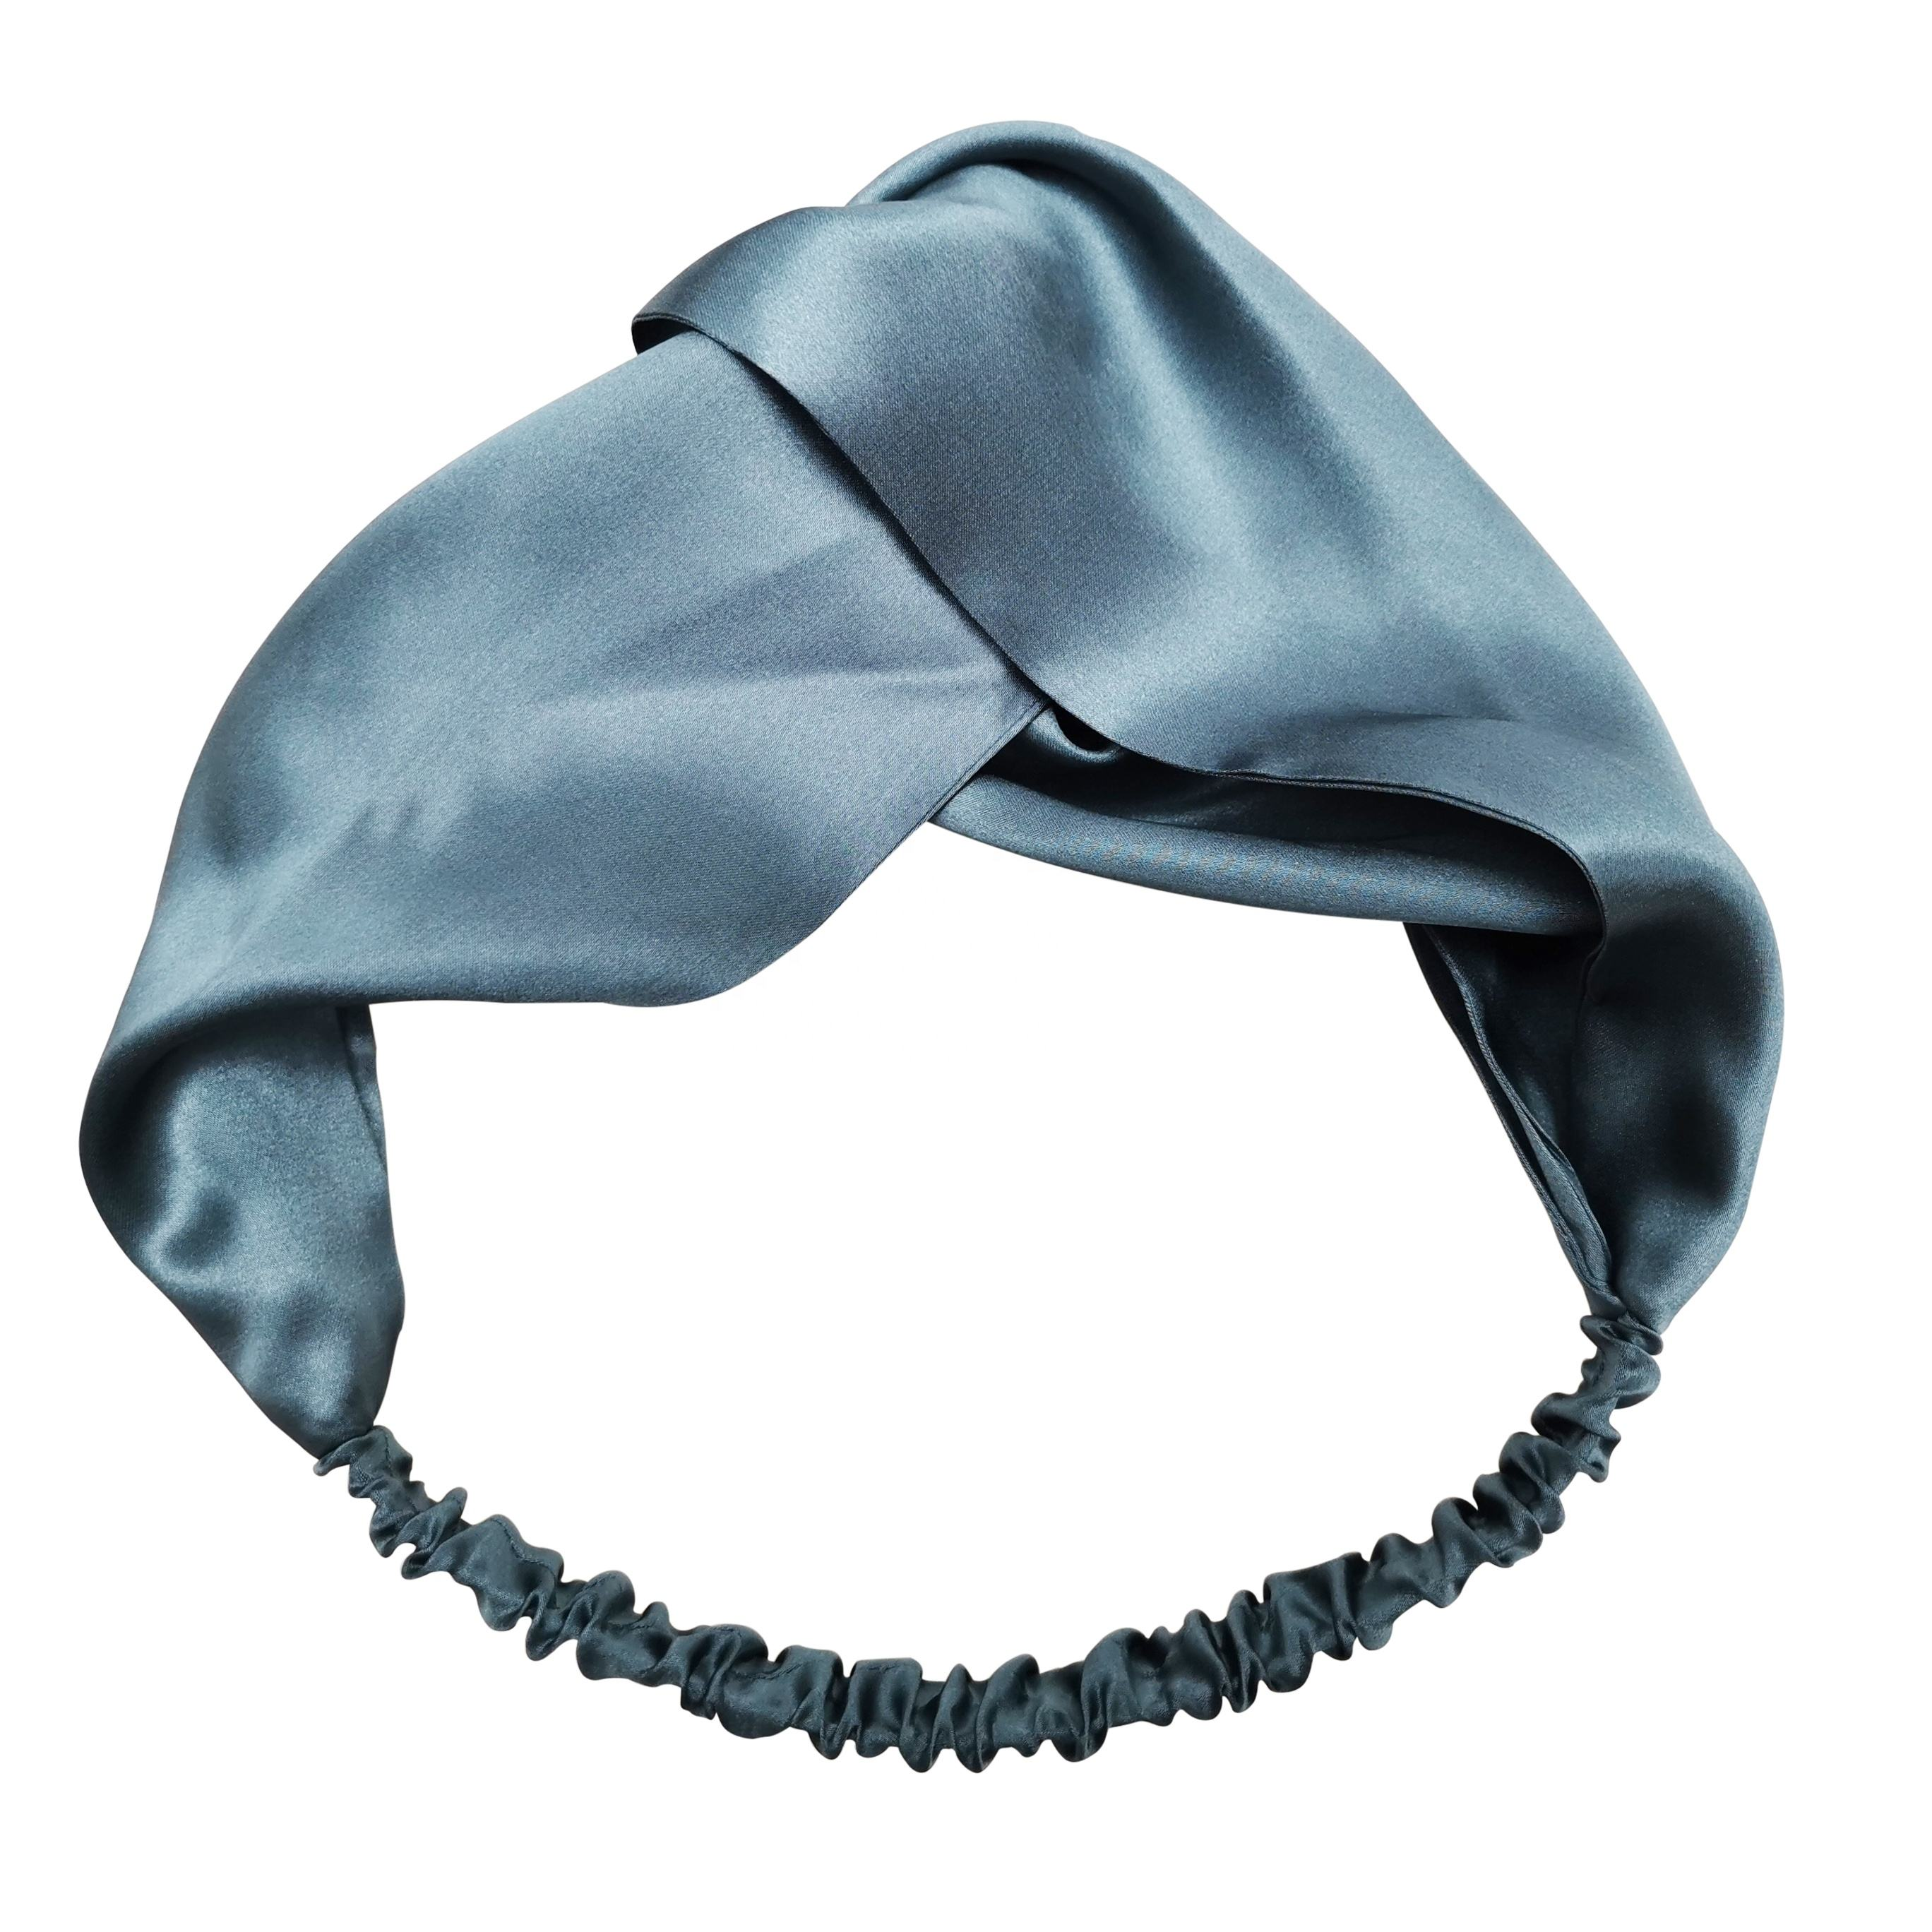 100% 6A Grade Silk Headband 16momme/19momme